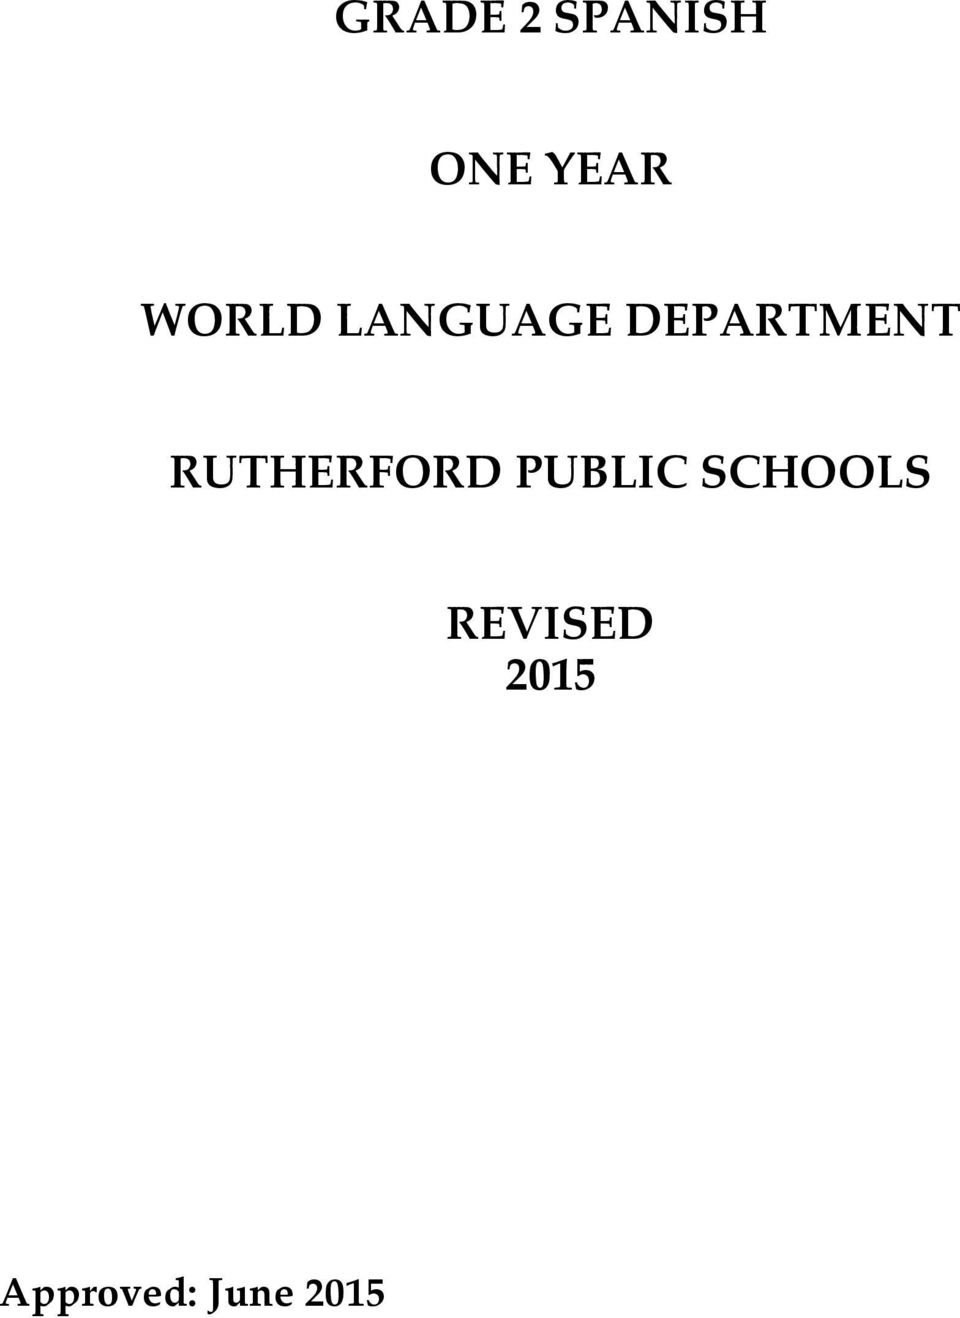 RUTHERFORD PUBLIC SCHOOLS